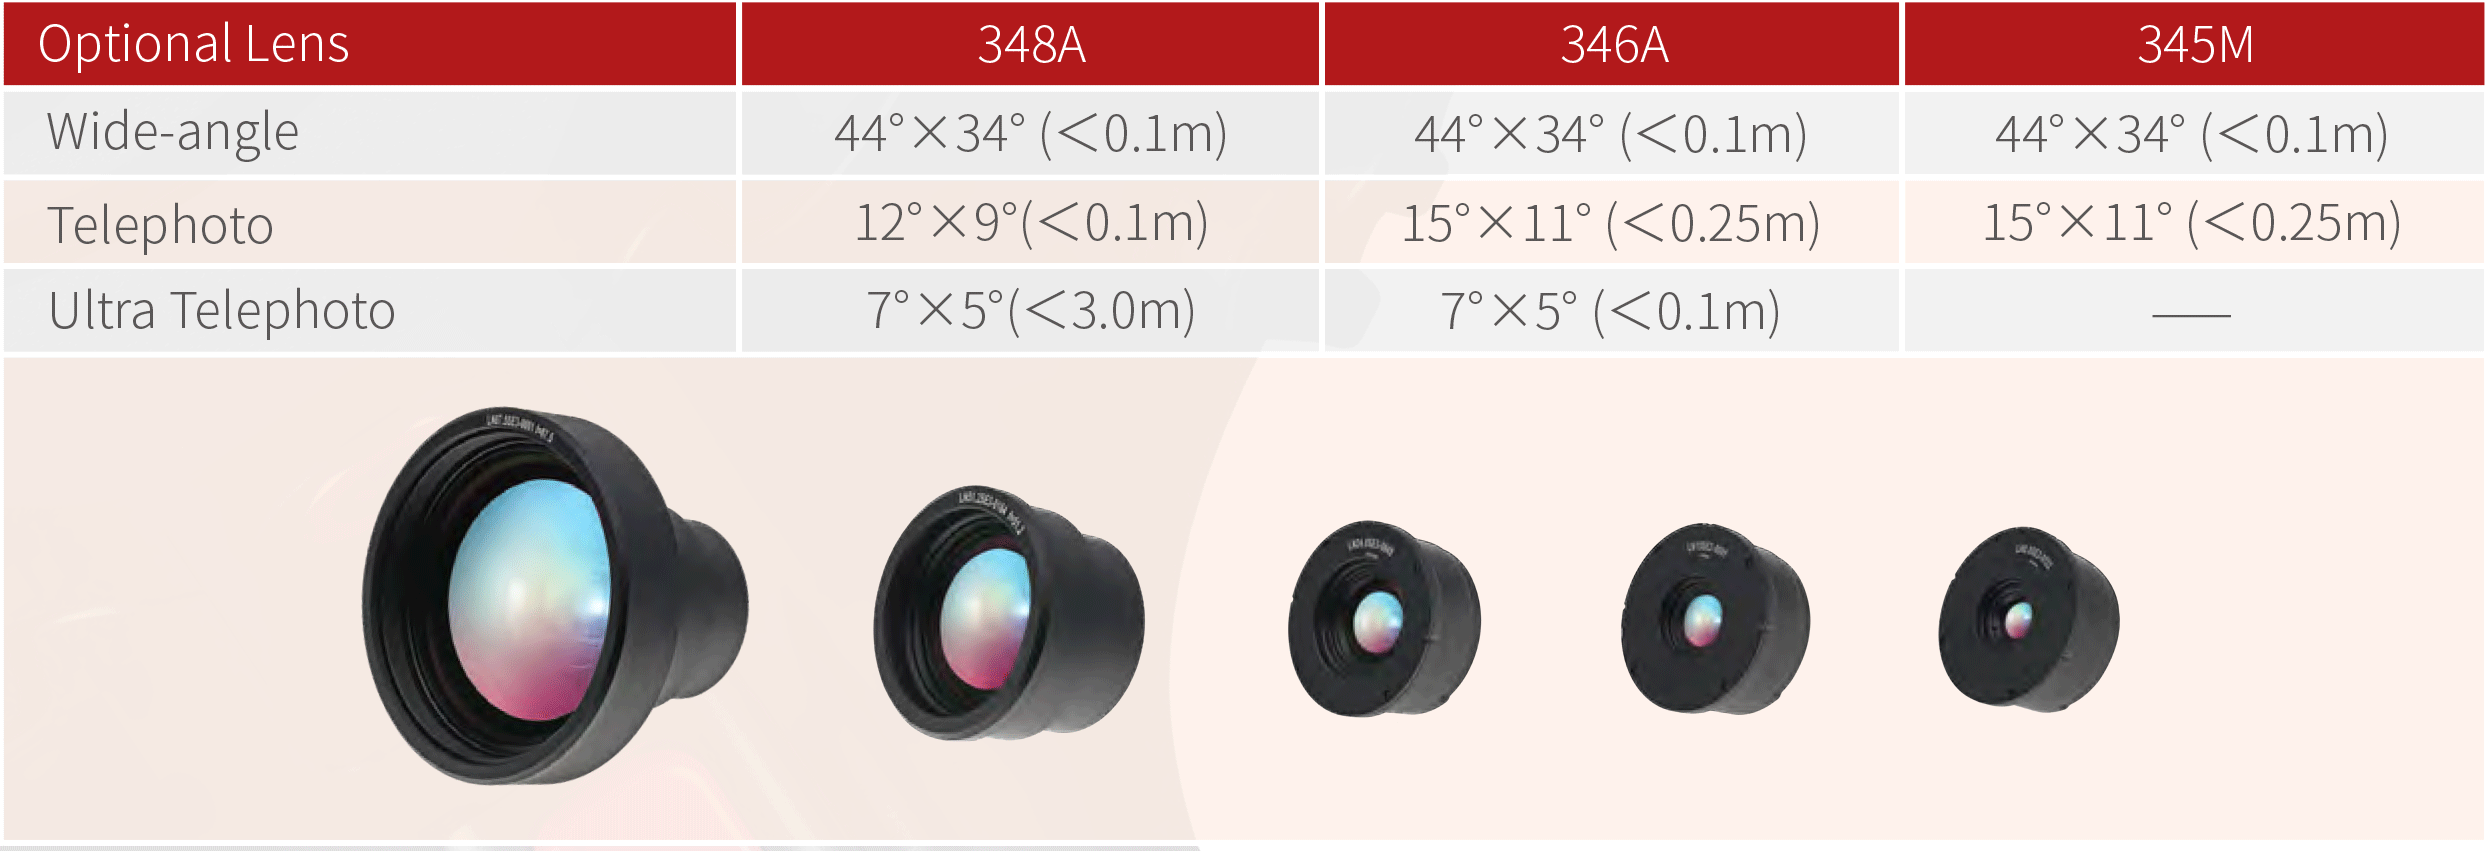 Fotric 340 Series Optional Lens